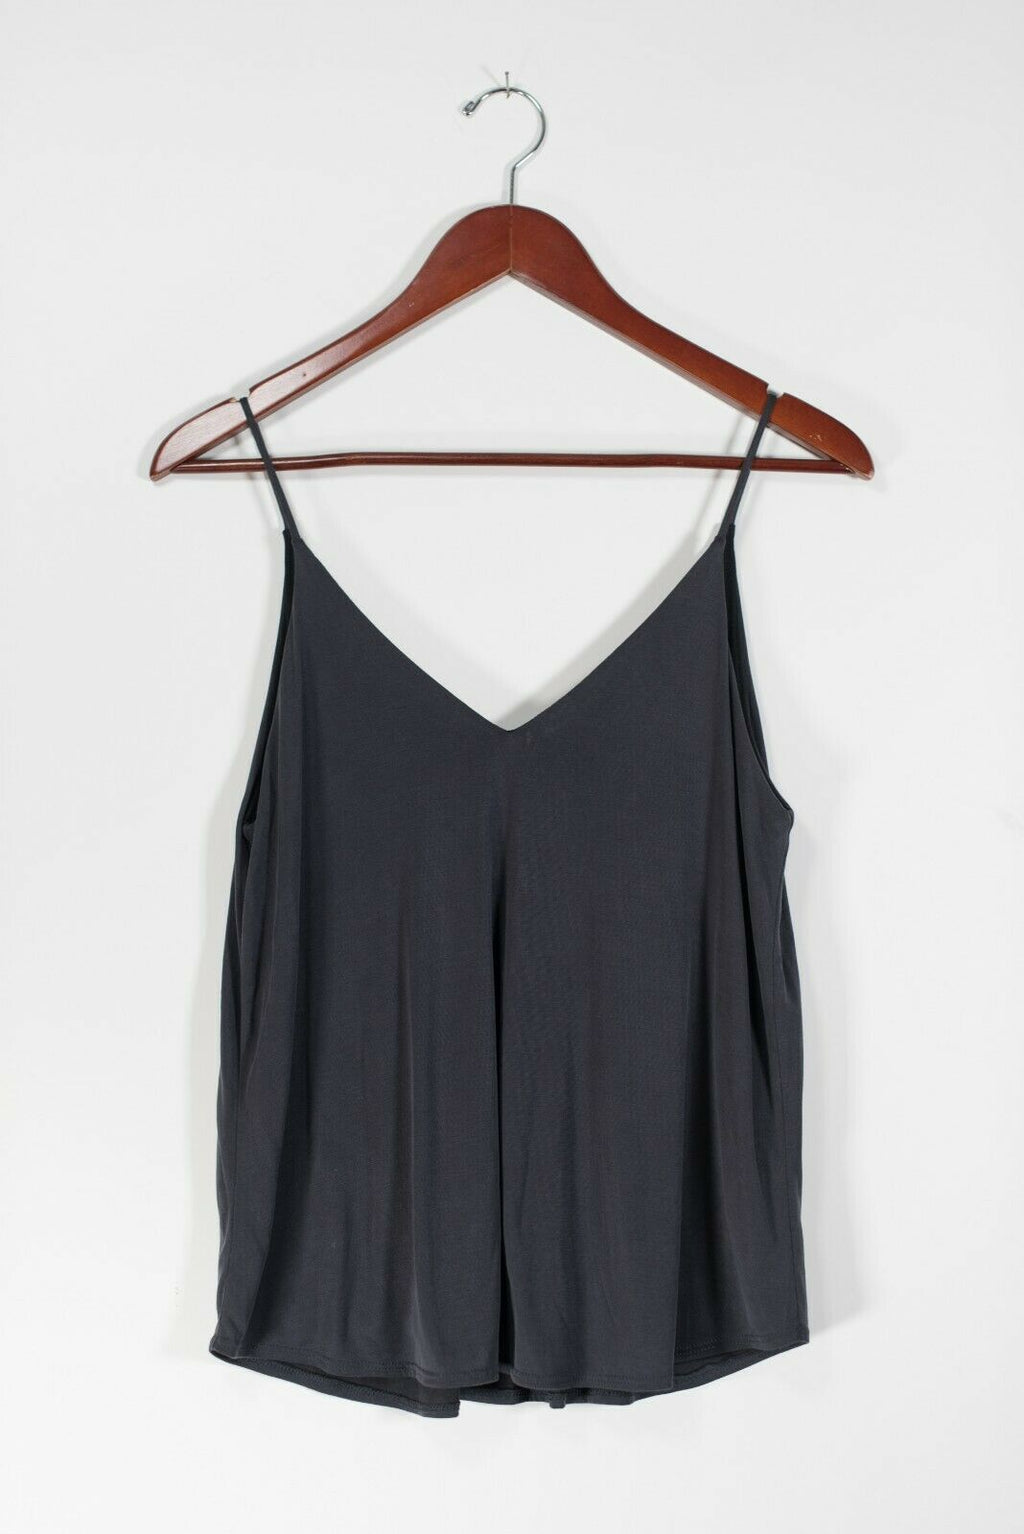 Aritzia Talula Women's Small Gray Black Top Cami V Neck Tank Spaghetti Strap NWT